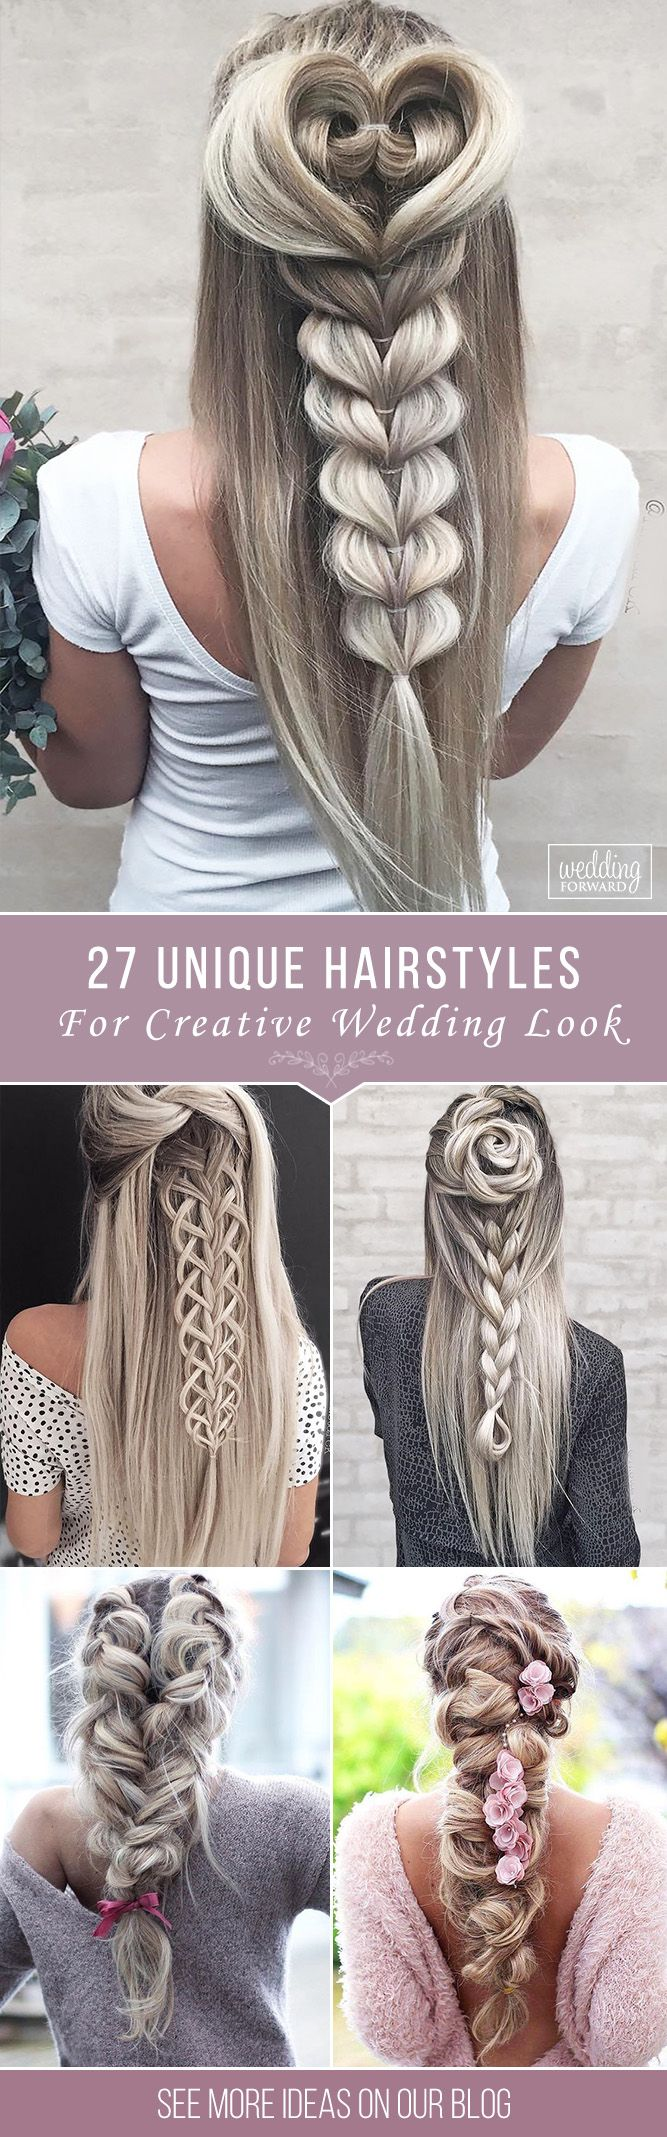 boho inspired creative and unique wedding hairstyles unique